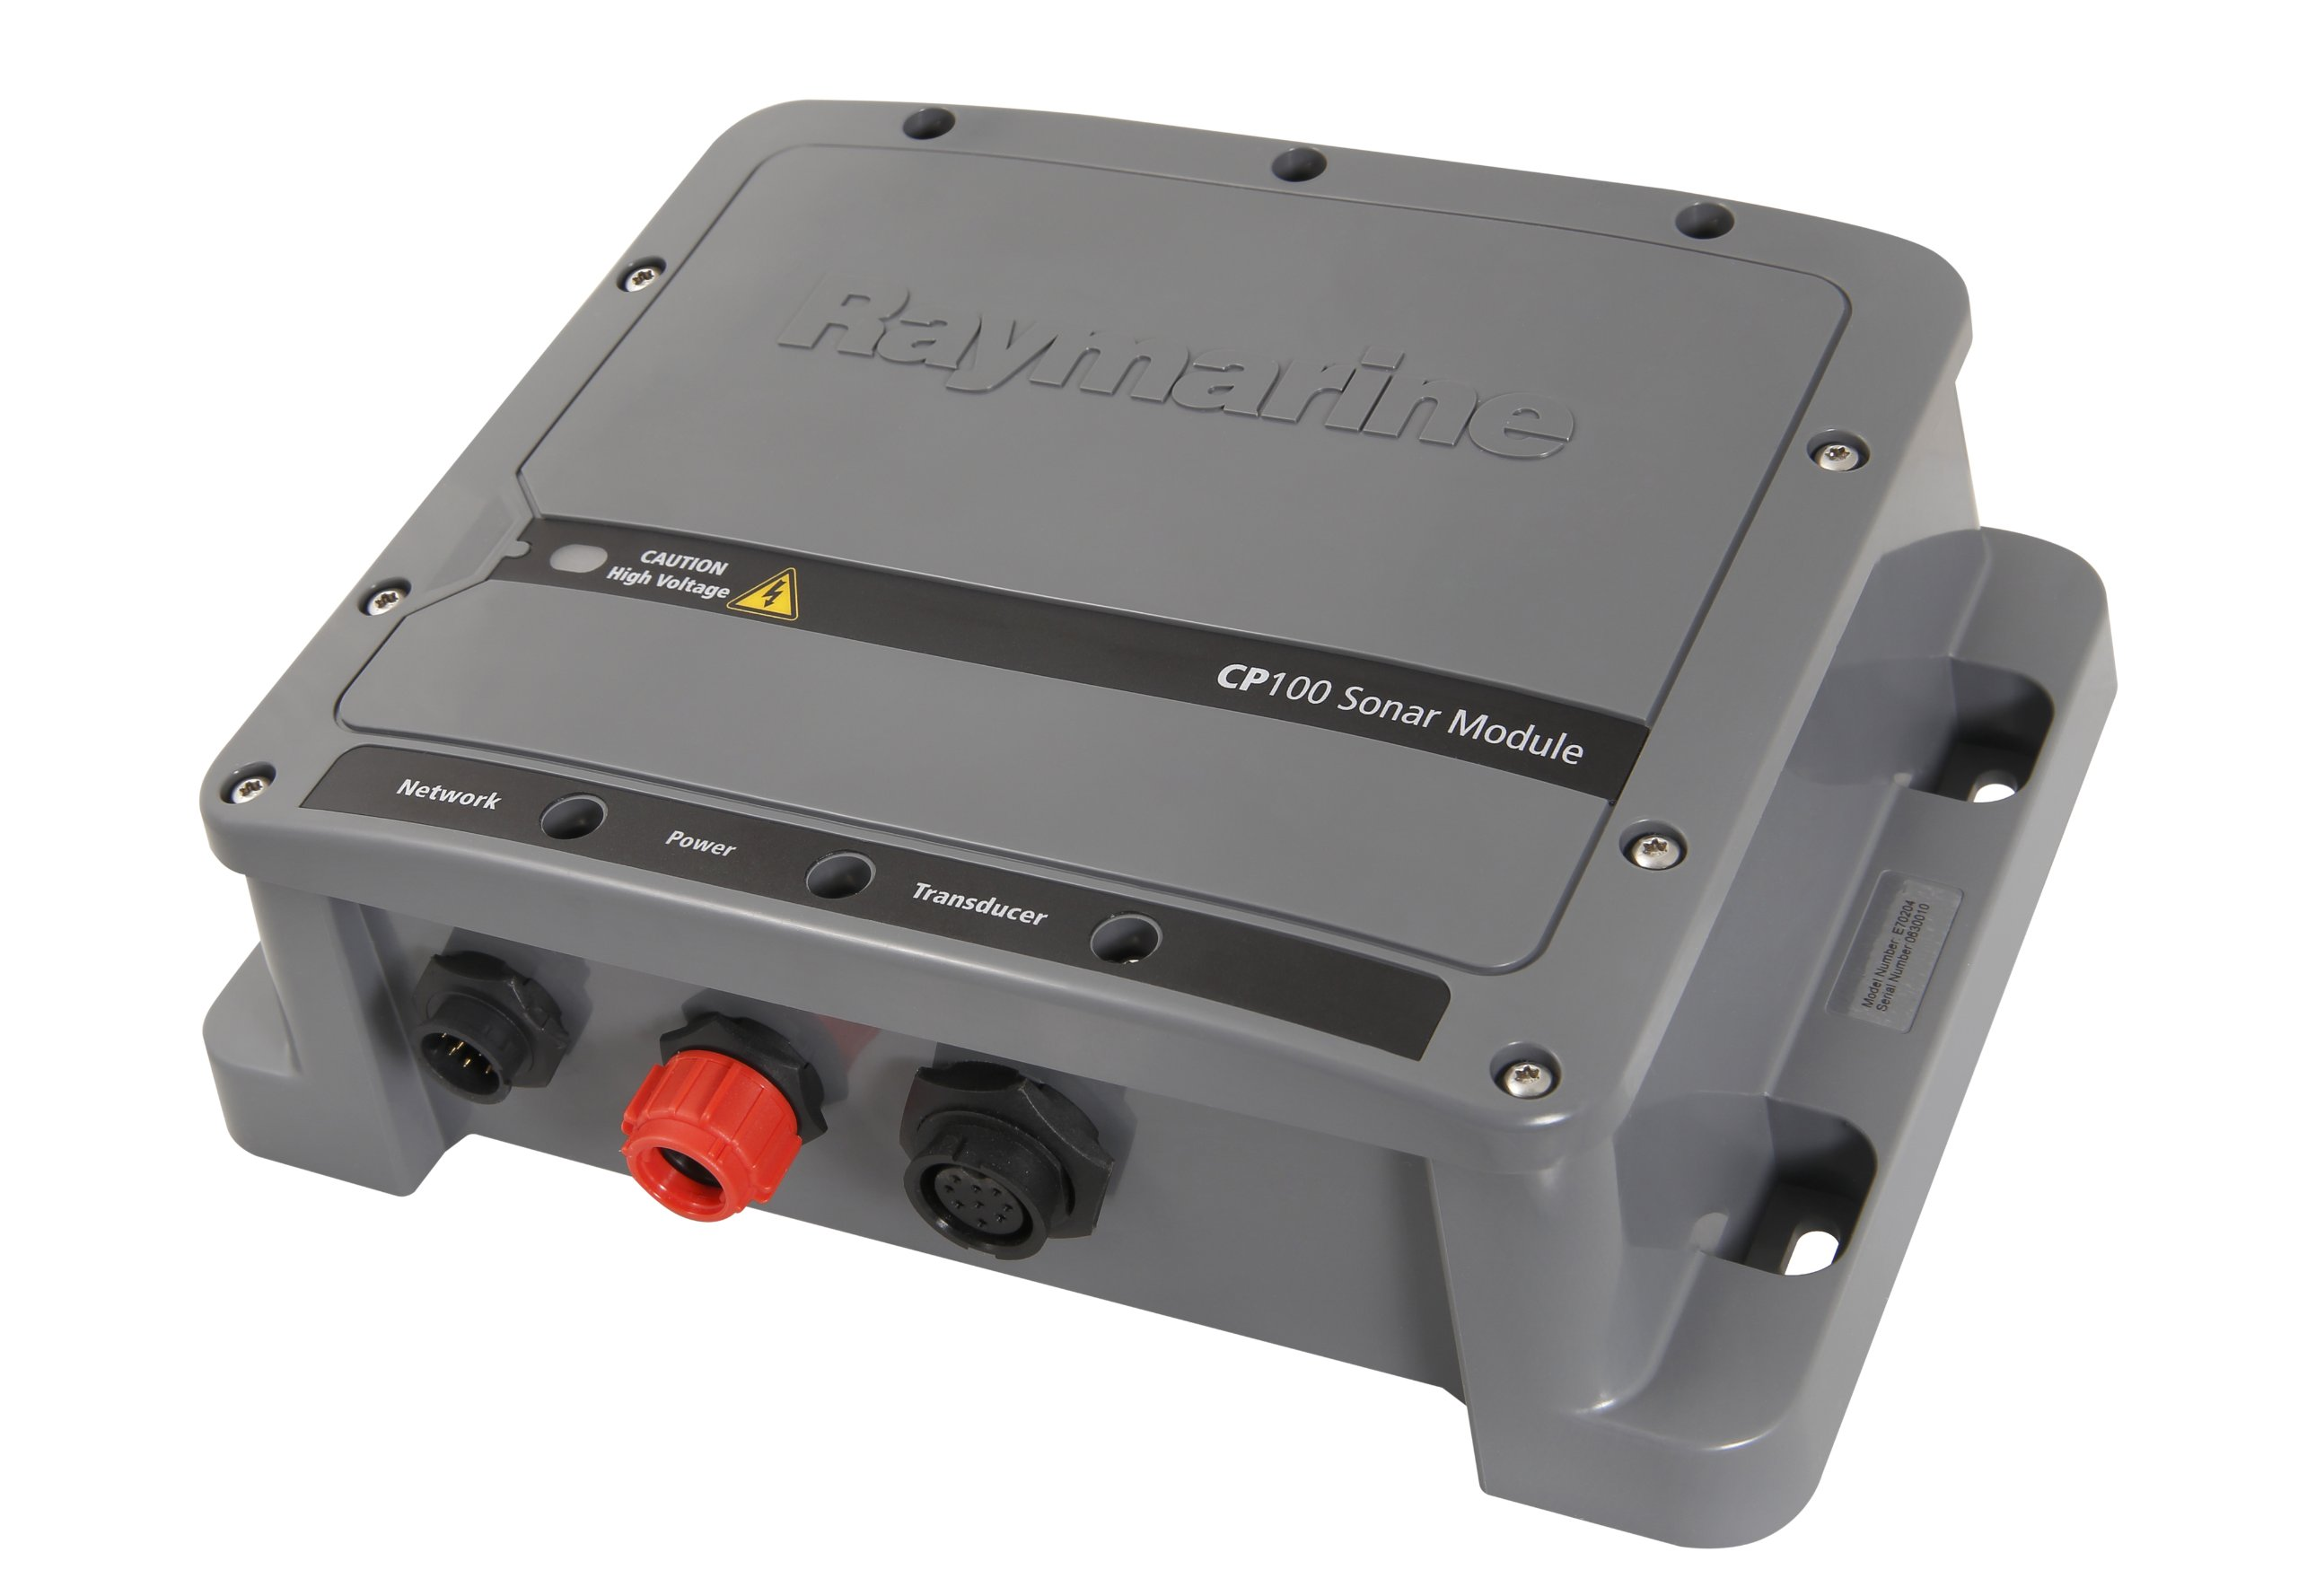 Raymarine CP100 Sonar Module for a, c, e, and gS series Multi-Function Displays by Raymarine